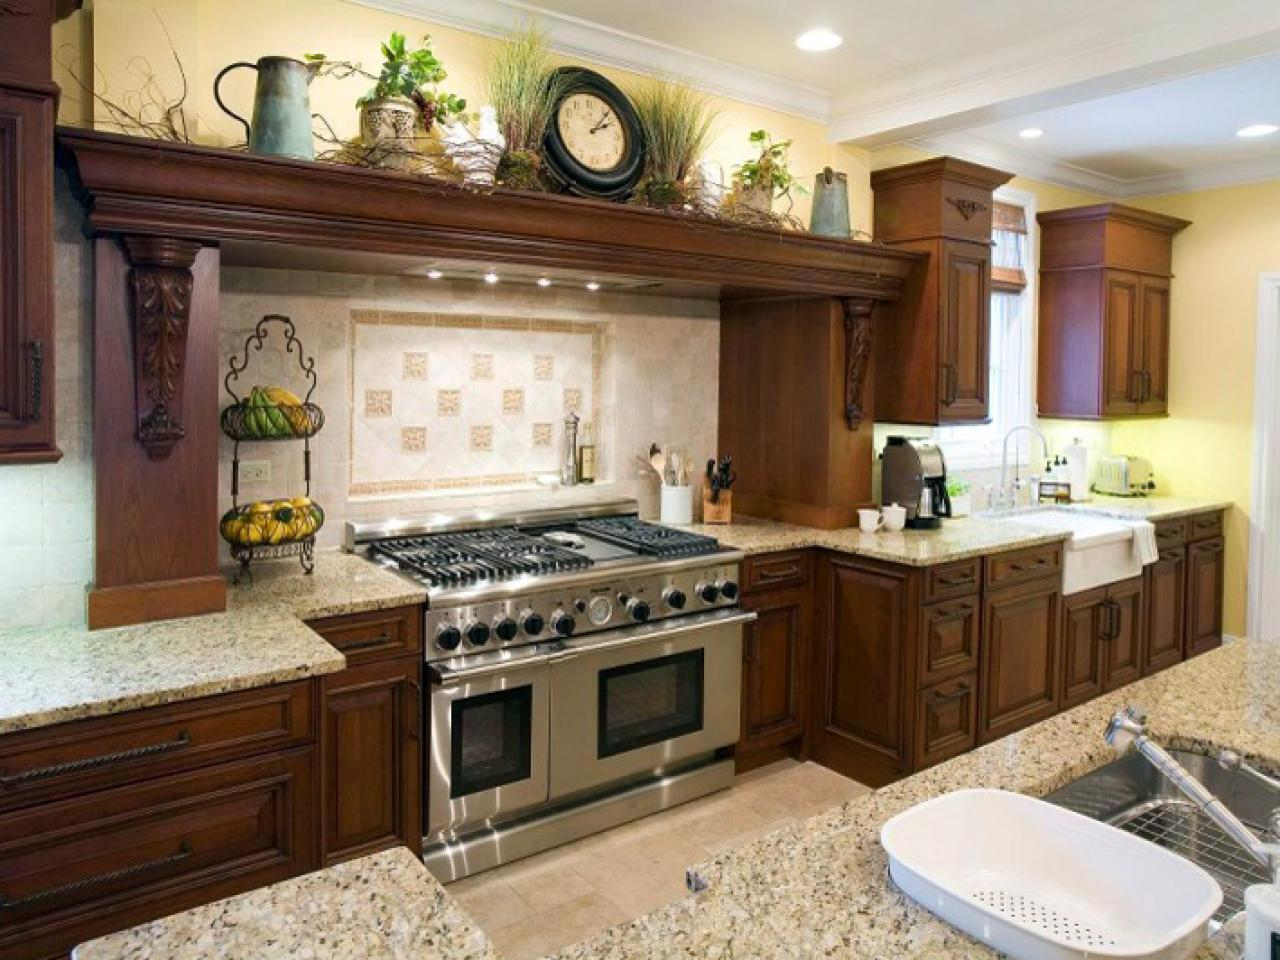 Mediterranean style kitchens kitchen designs choose for Kitchen cabinets designs photos